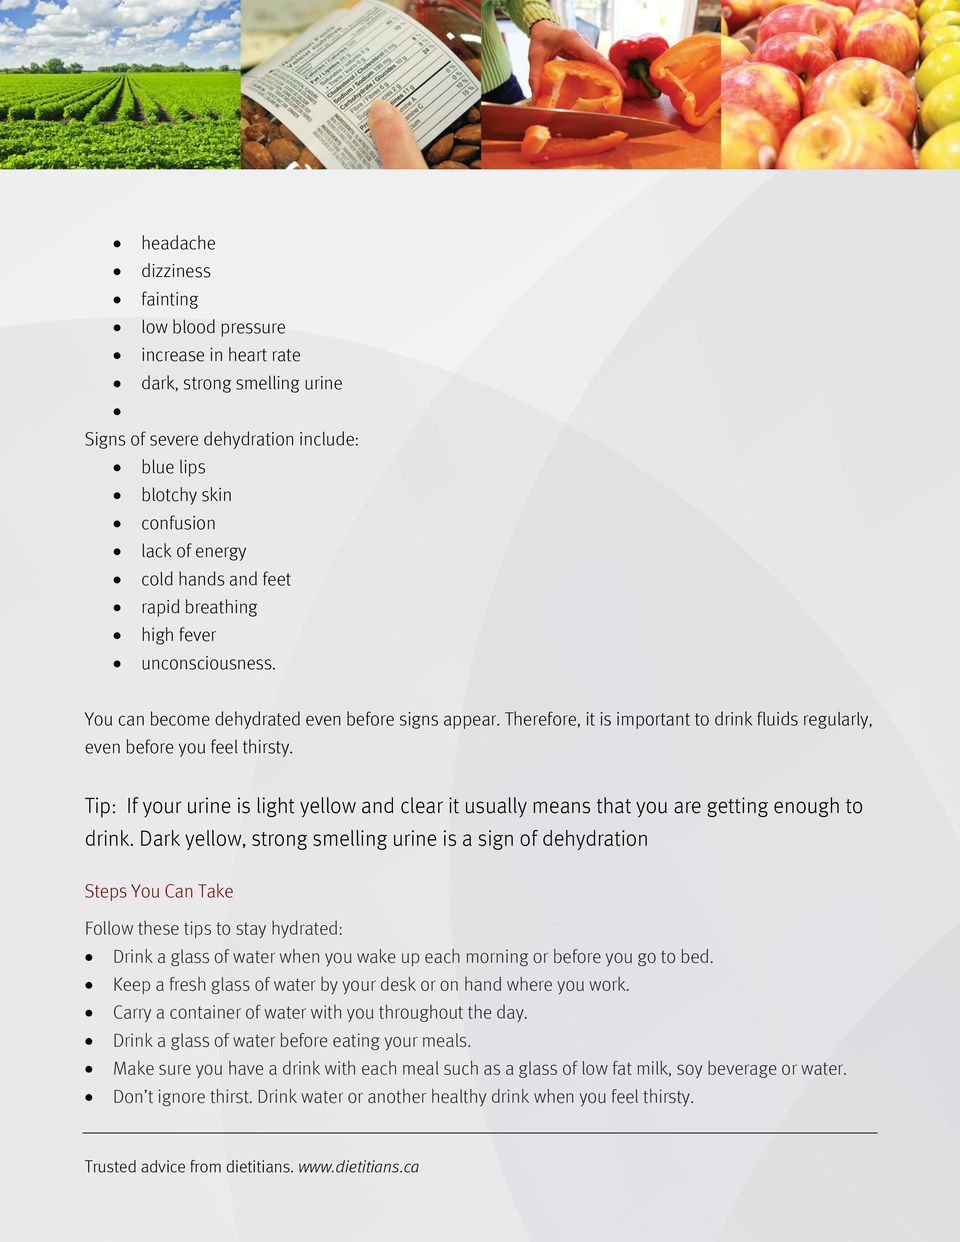 Tip: If your urine is light yellow and clear it usually means that you are getting enough to drink.